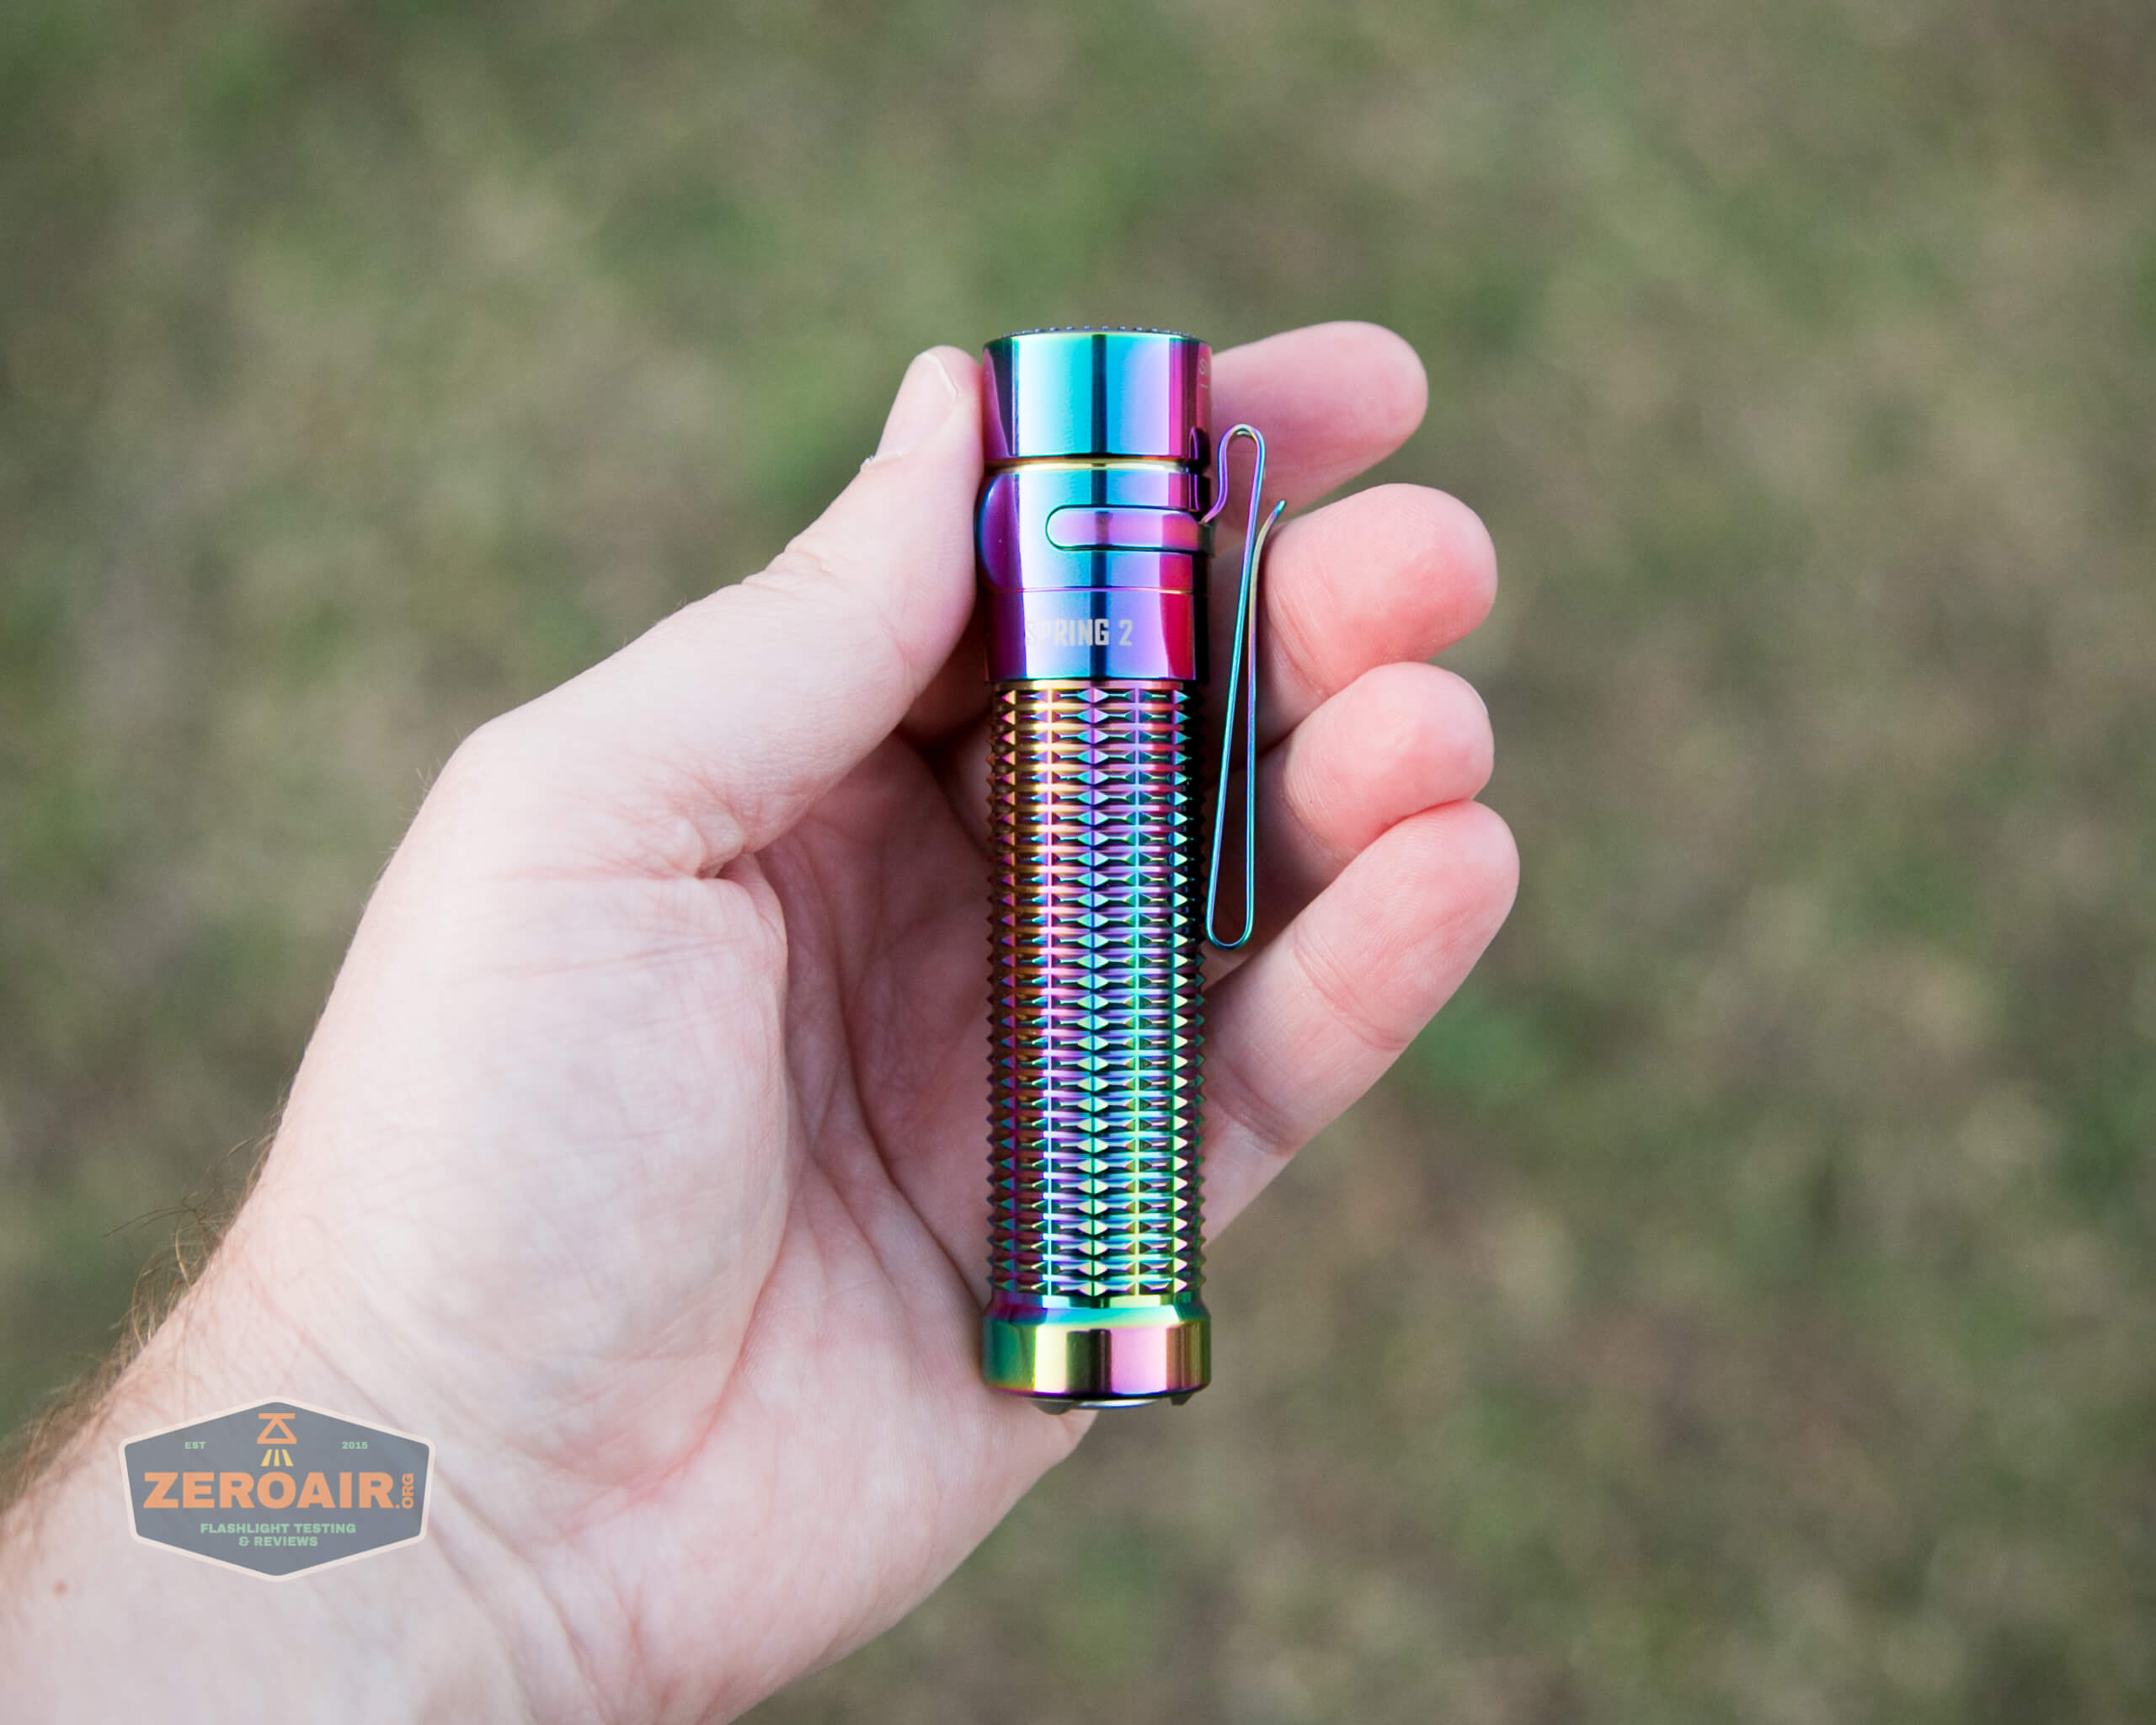 olight warrior mini rainbow spring 2 led flashlight in hand